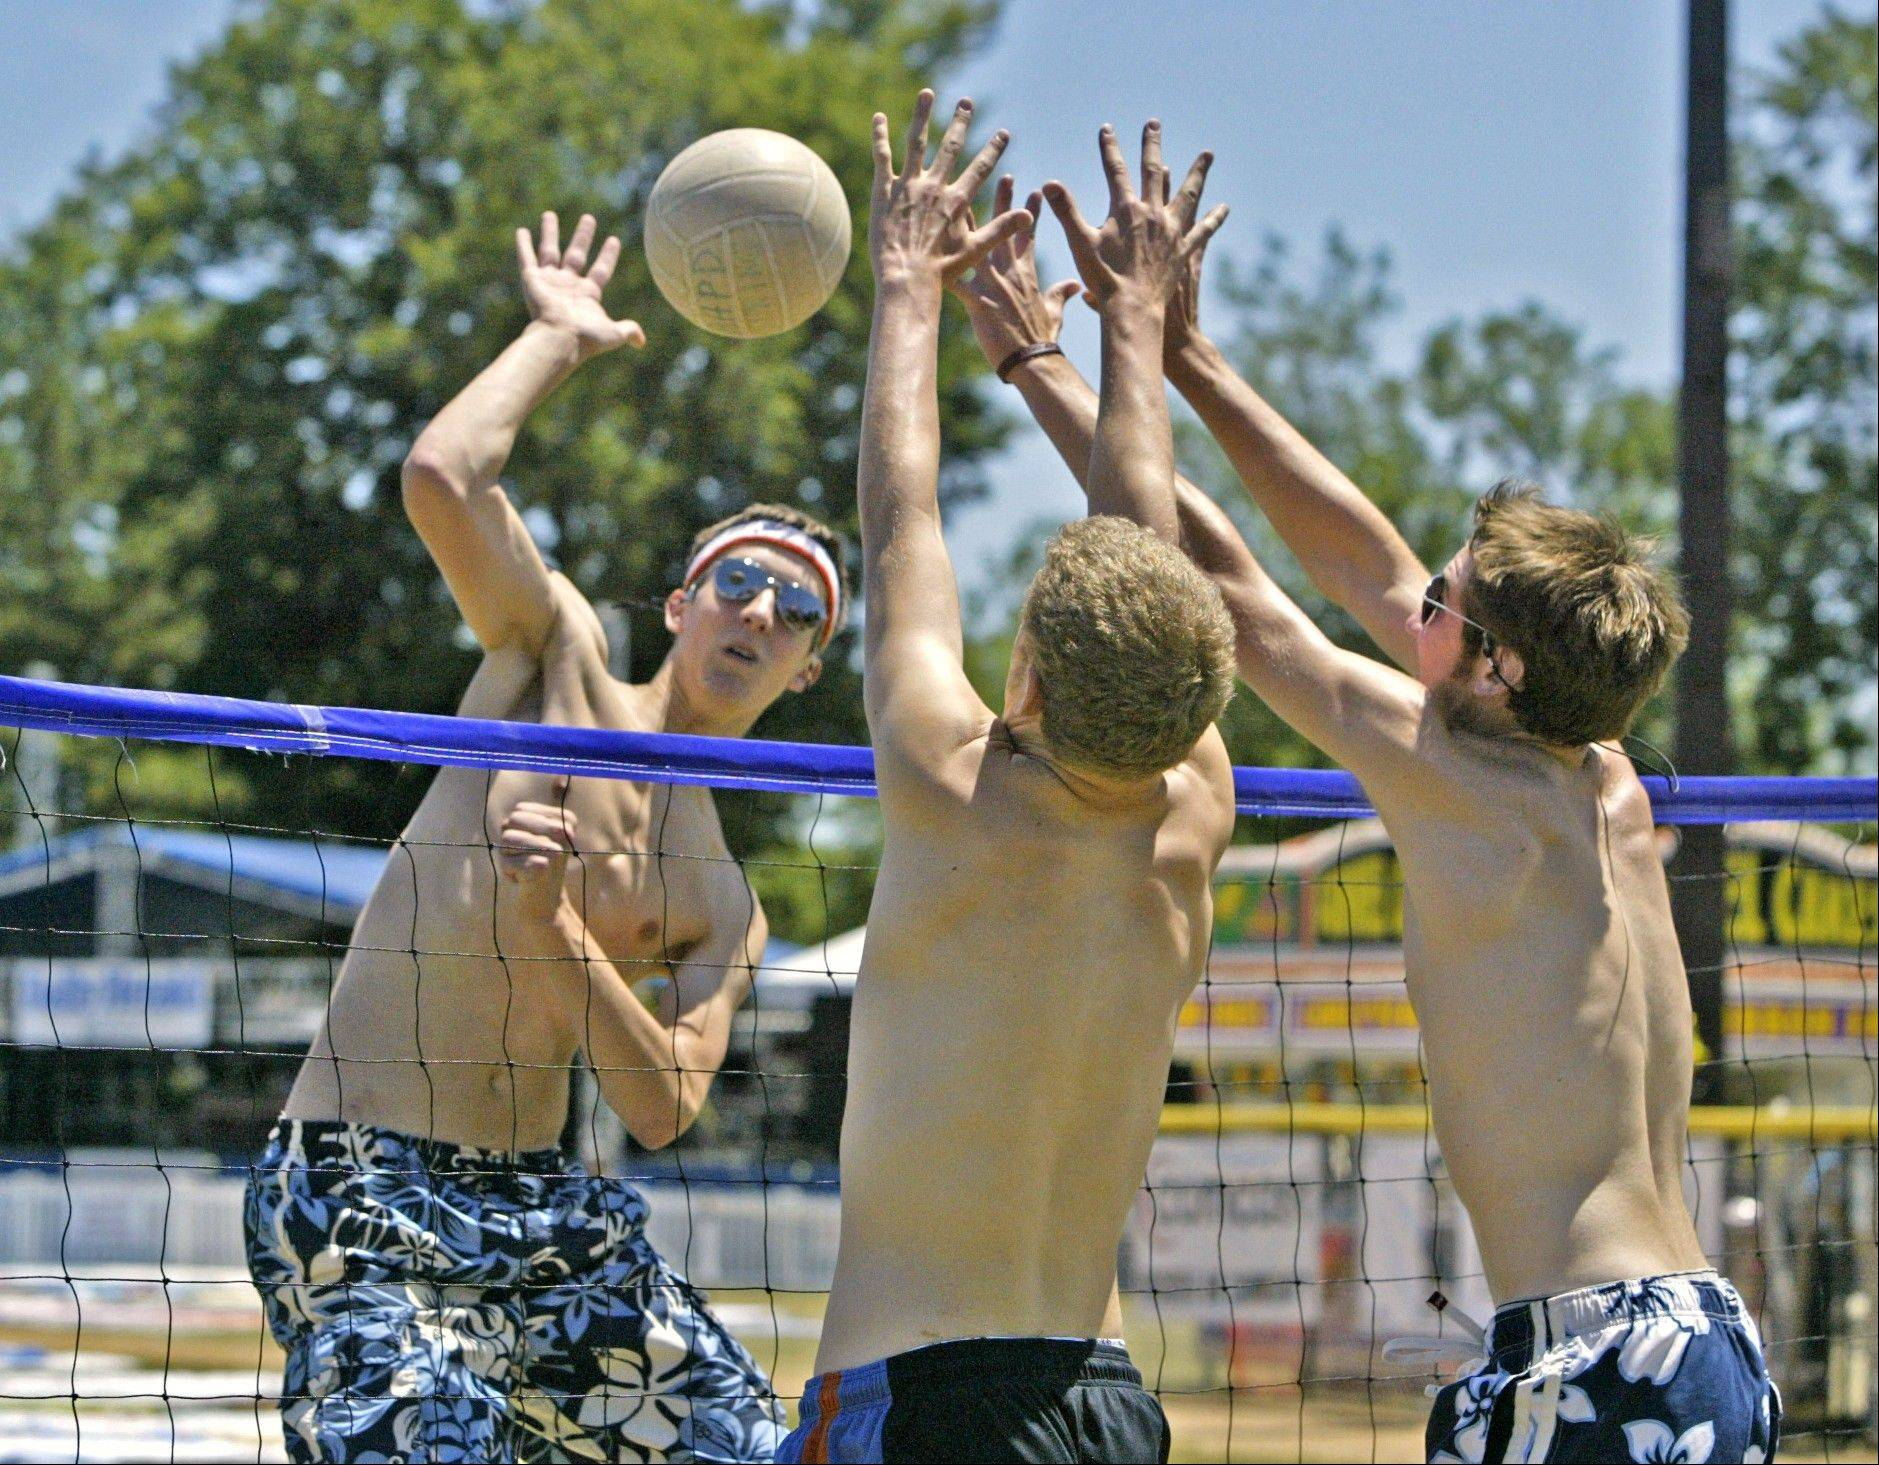 The teen volleyball tournament is a festival staple.